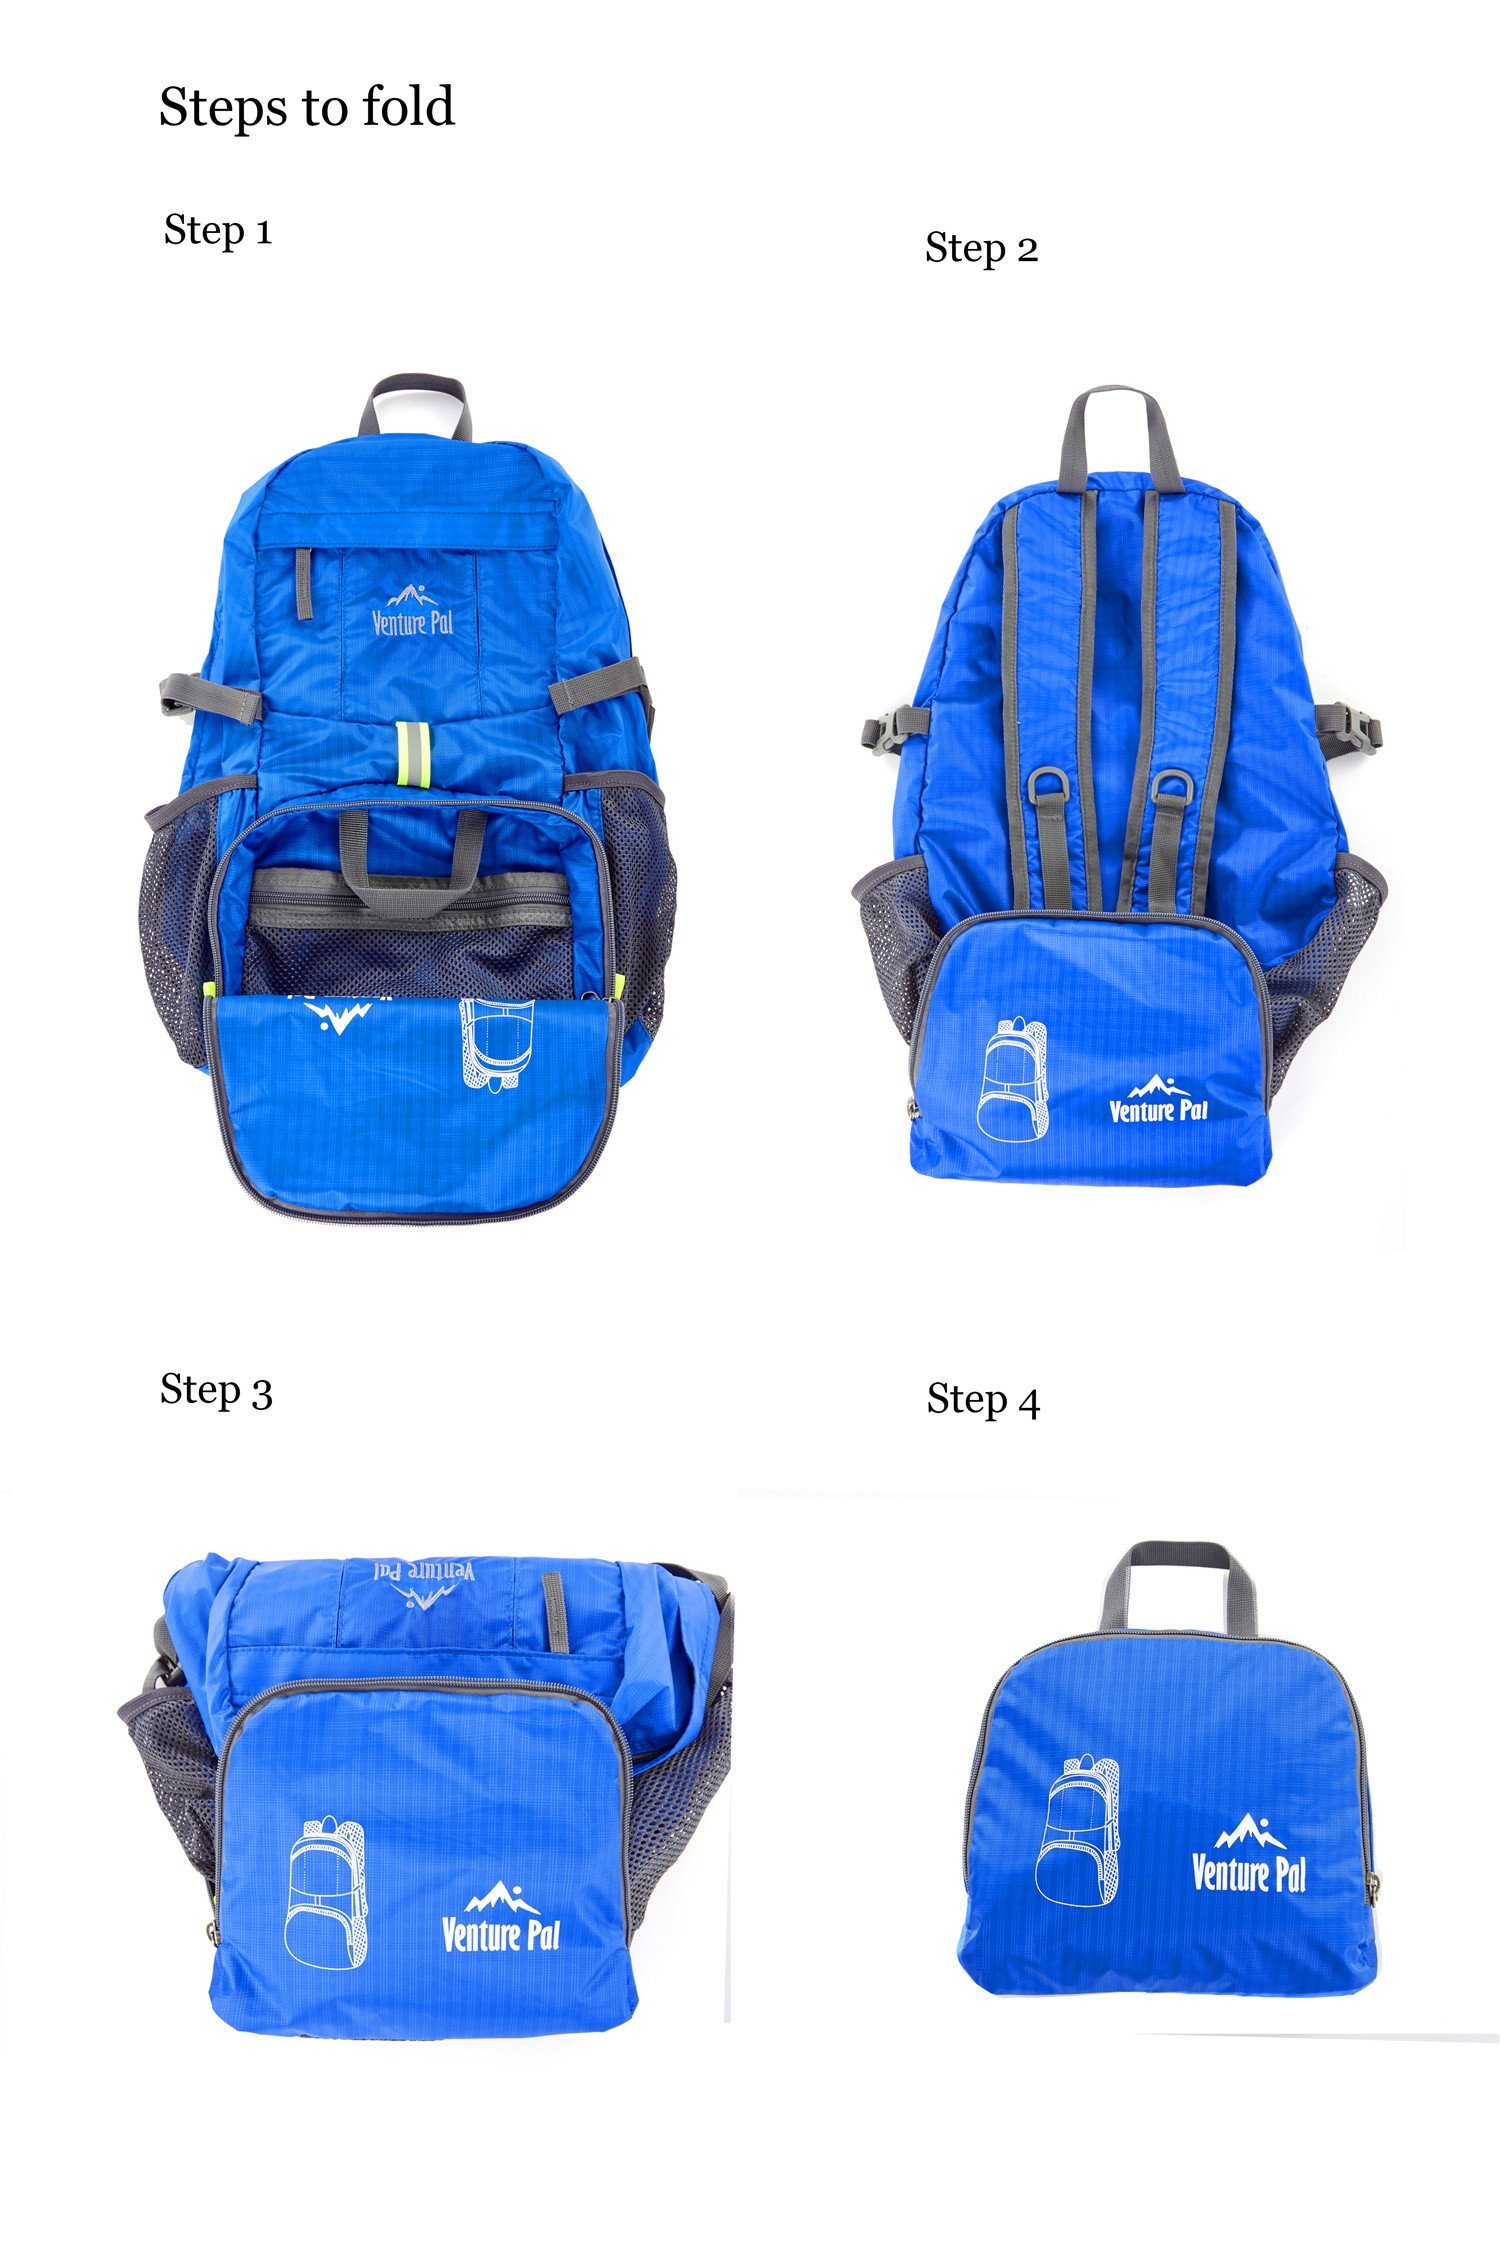 d1dcca06dd Venture Pal Lightweight Packable Durable Travel Hiking Backpack Daypack  (Royal Blue) … - VP001E-RoyalBlue   Hiking Daypacks   Sports   Outdoors -  tibs